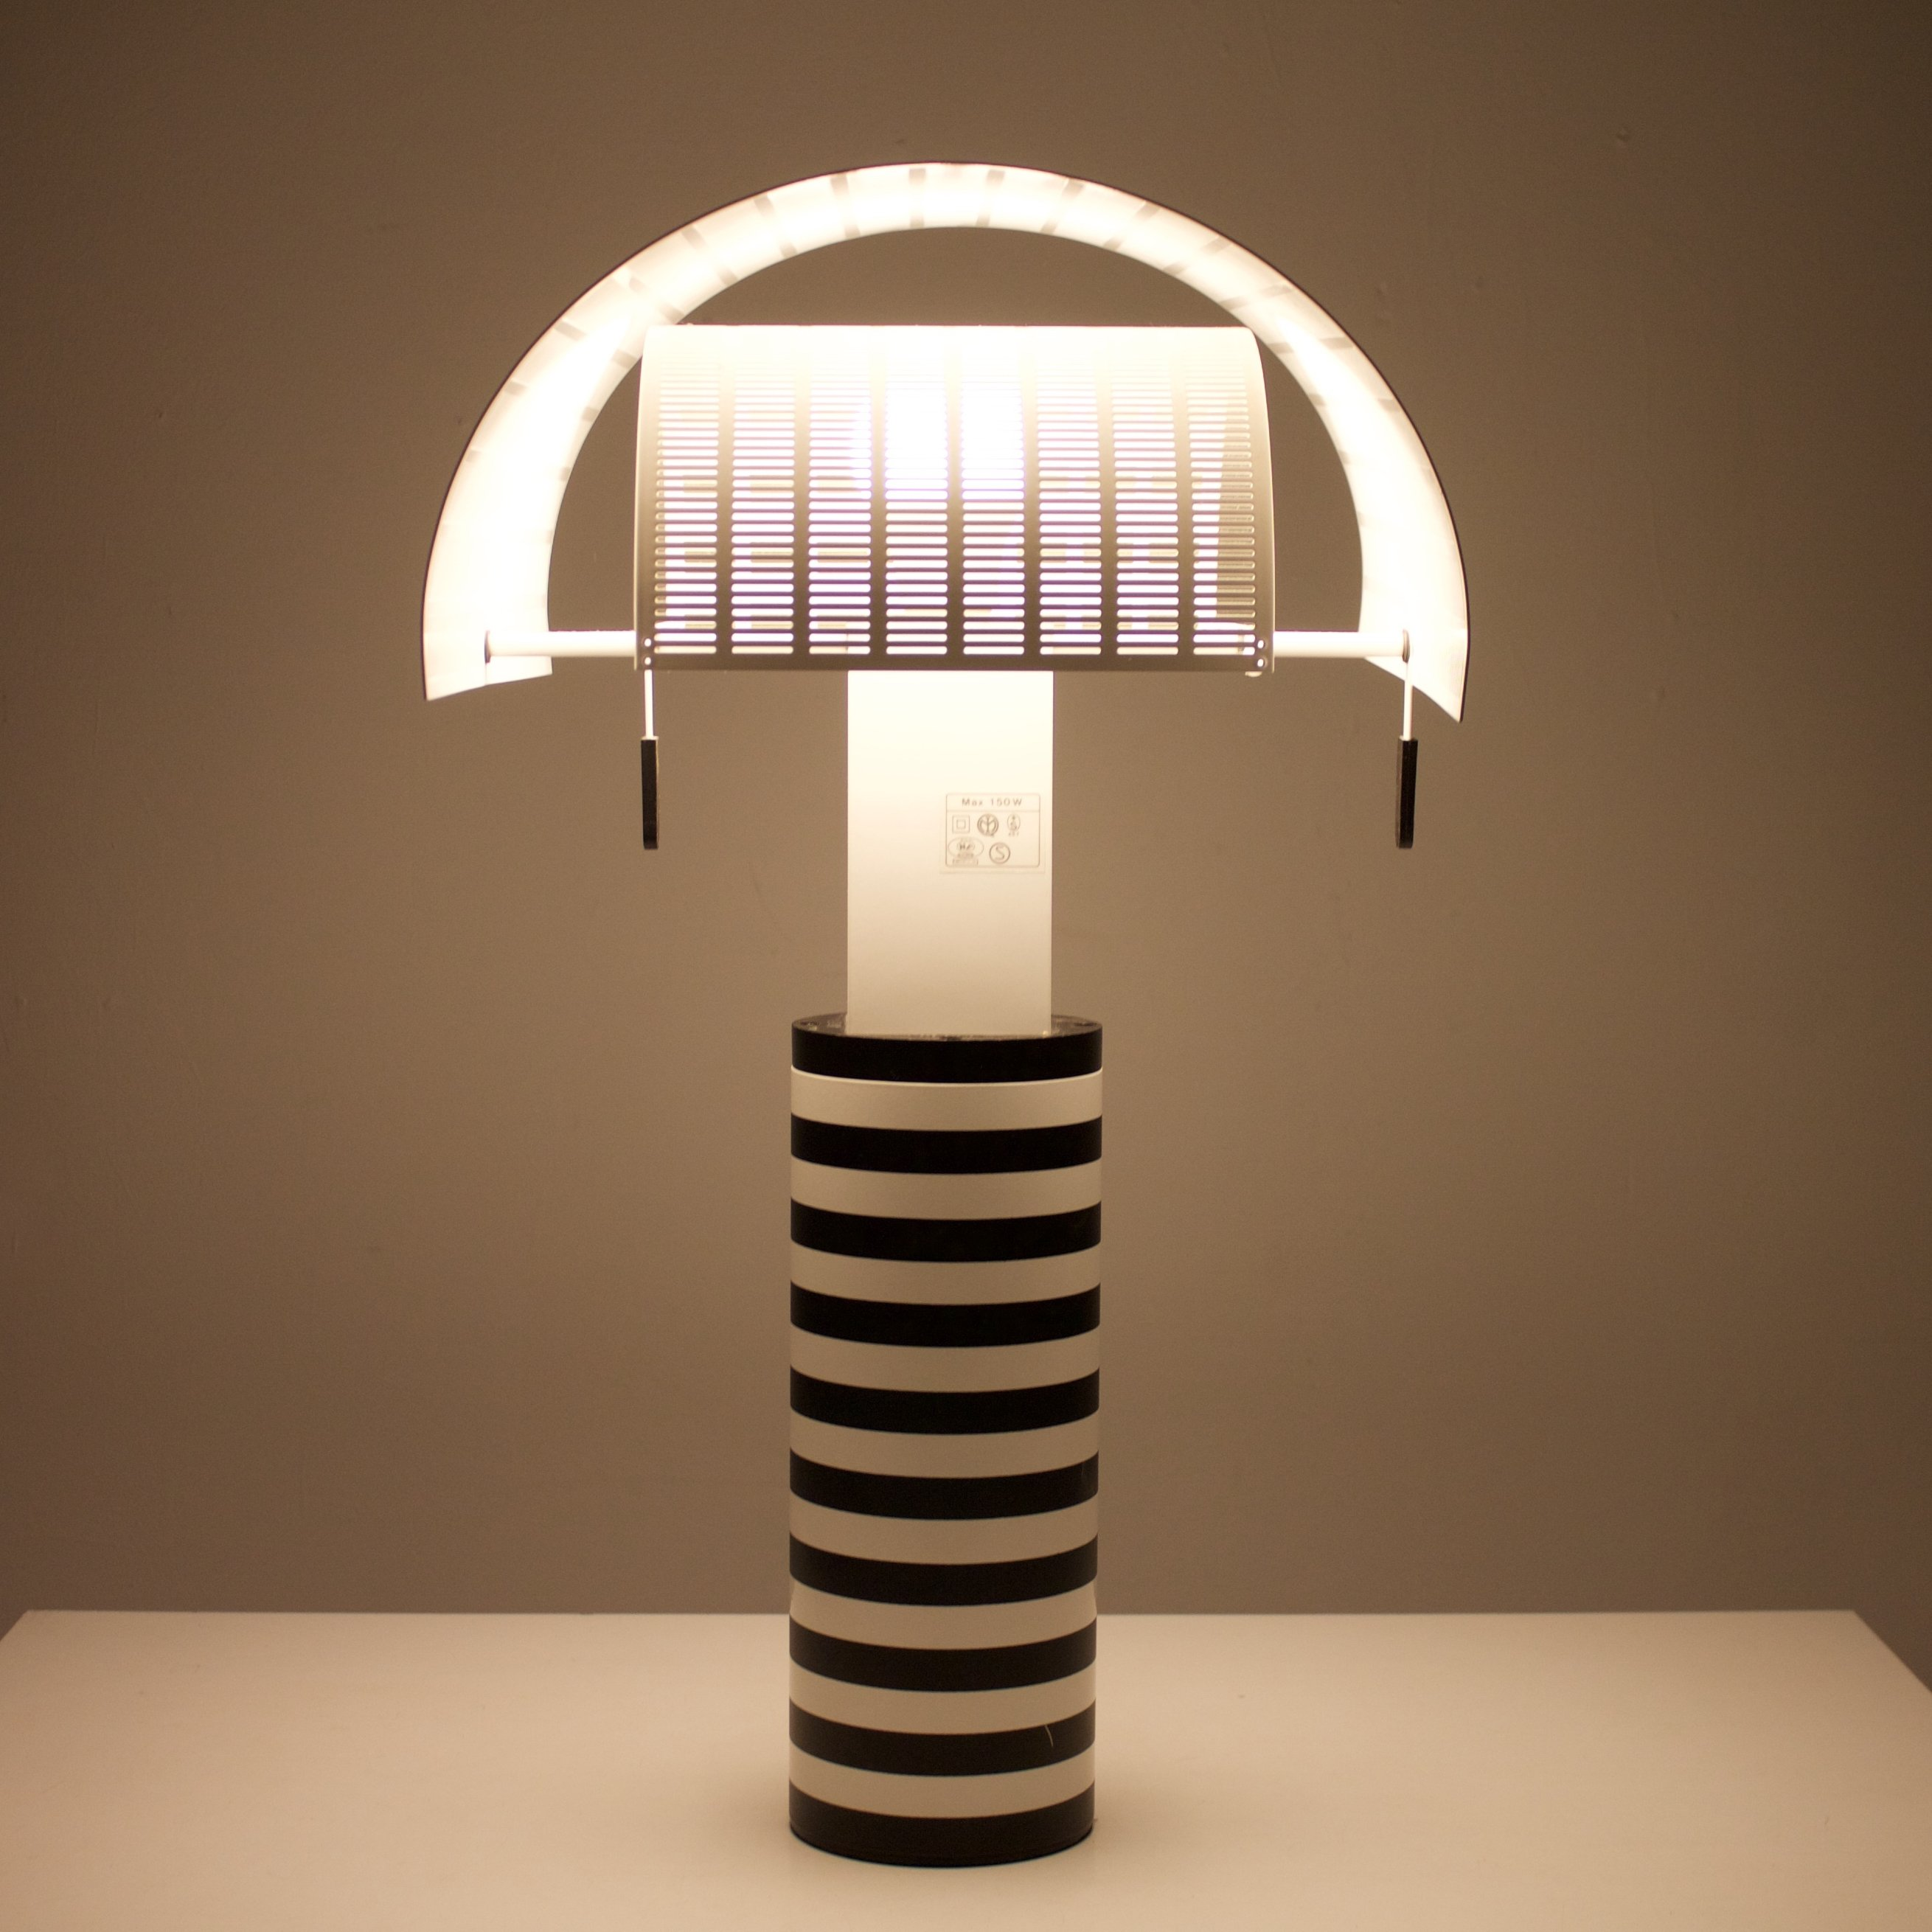 Shogun Desk Lamp By Mario Botta For Artemide, 1980s